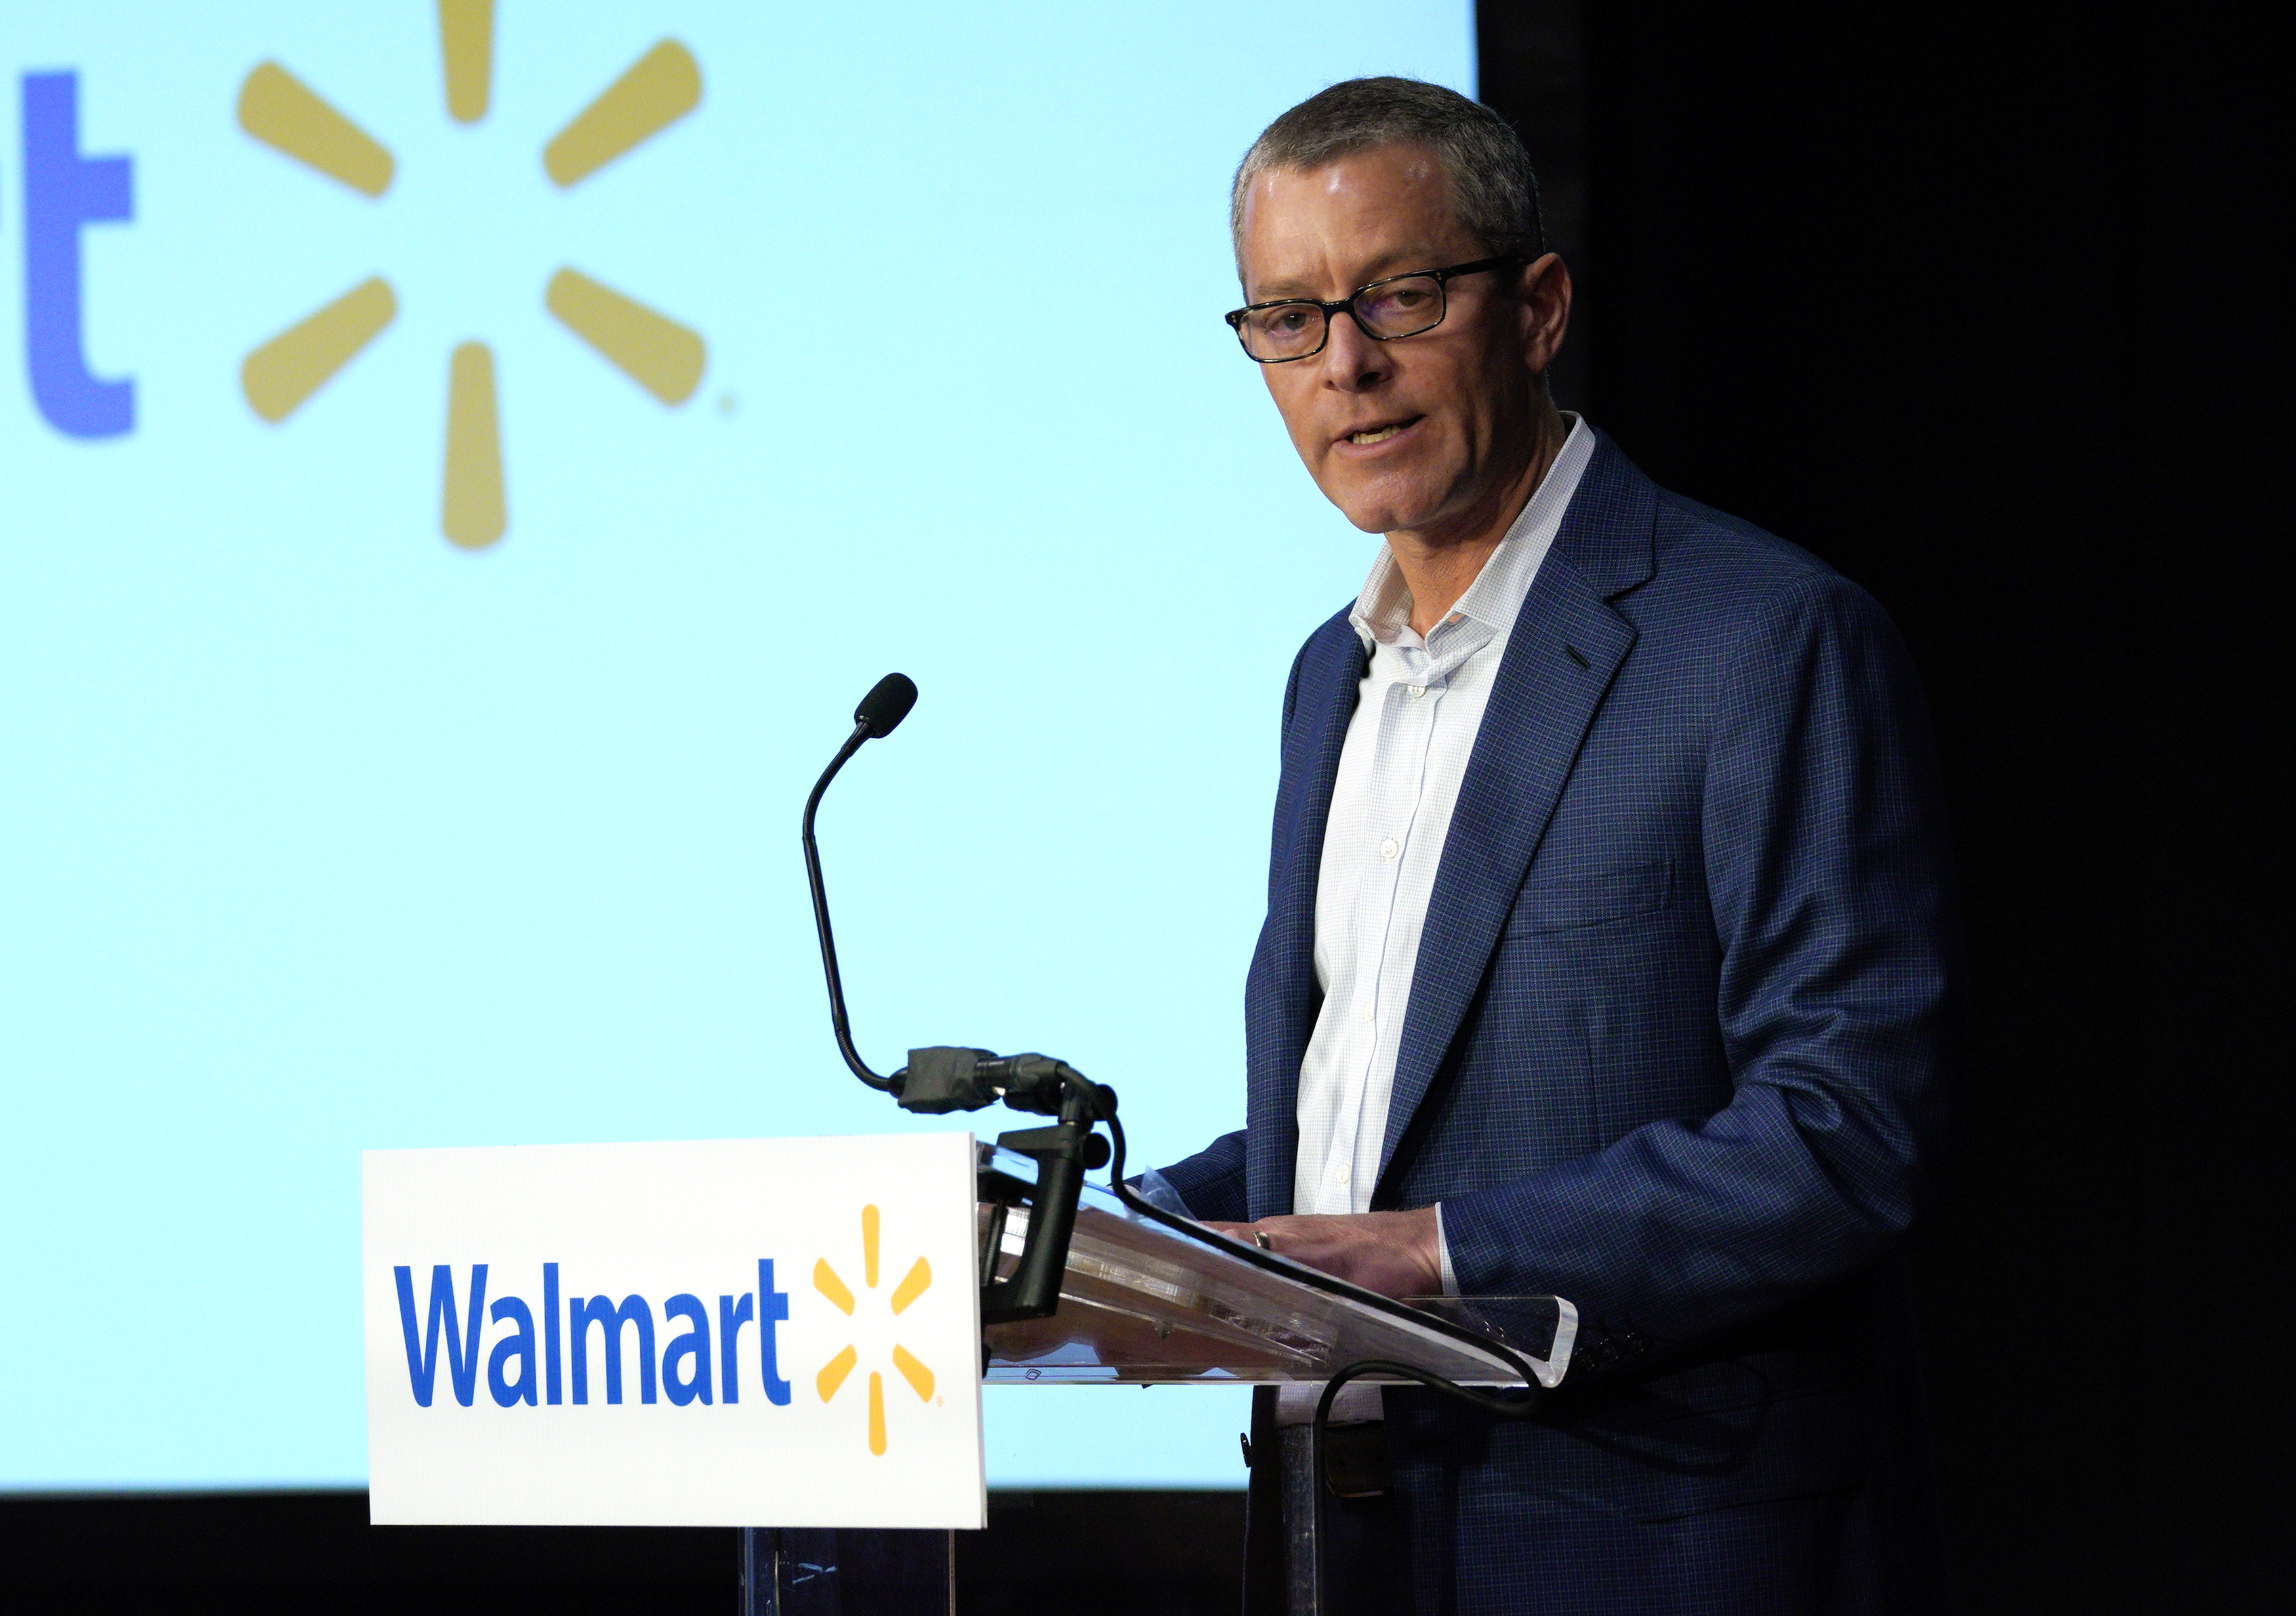 Walmart's college tuition plan, explained - Vox